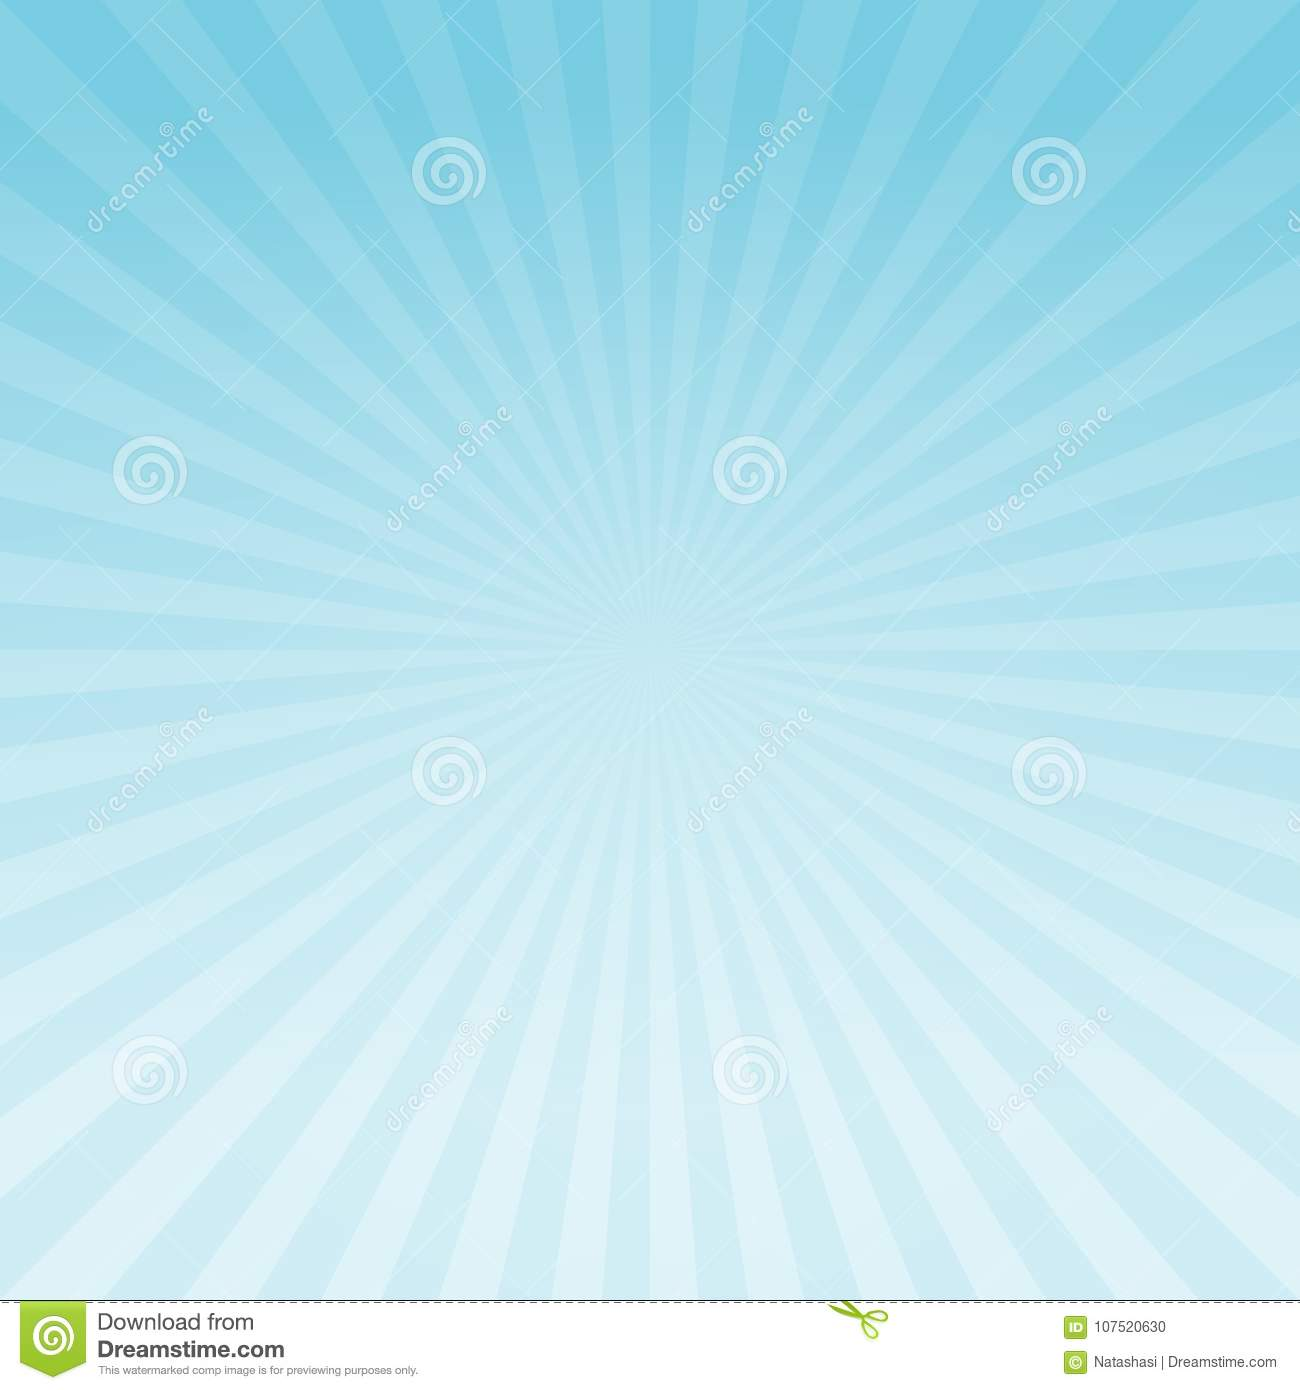 Abstract light Blue gradient rays background. Vector EPS 10 cmyk